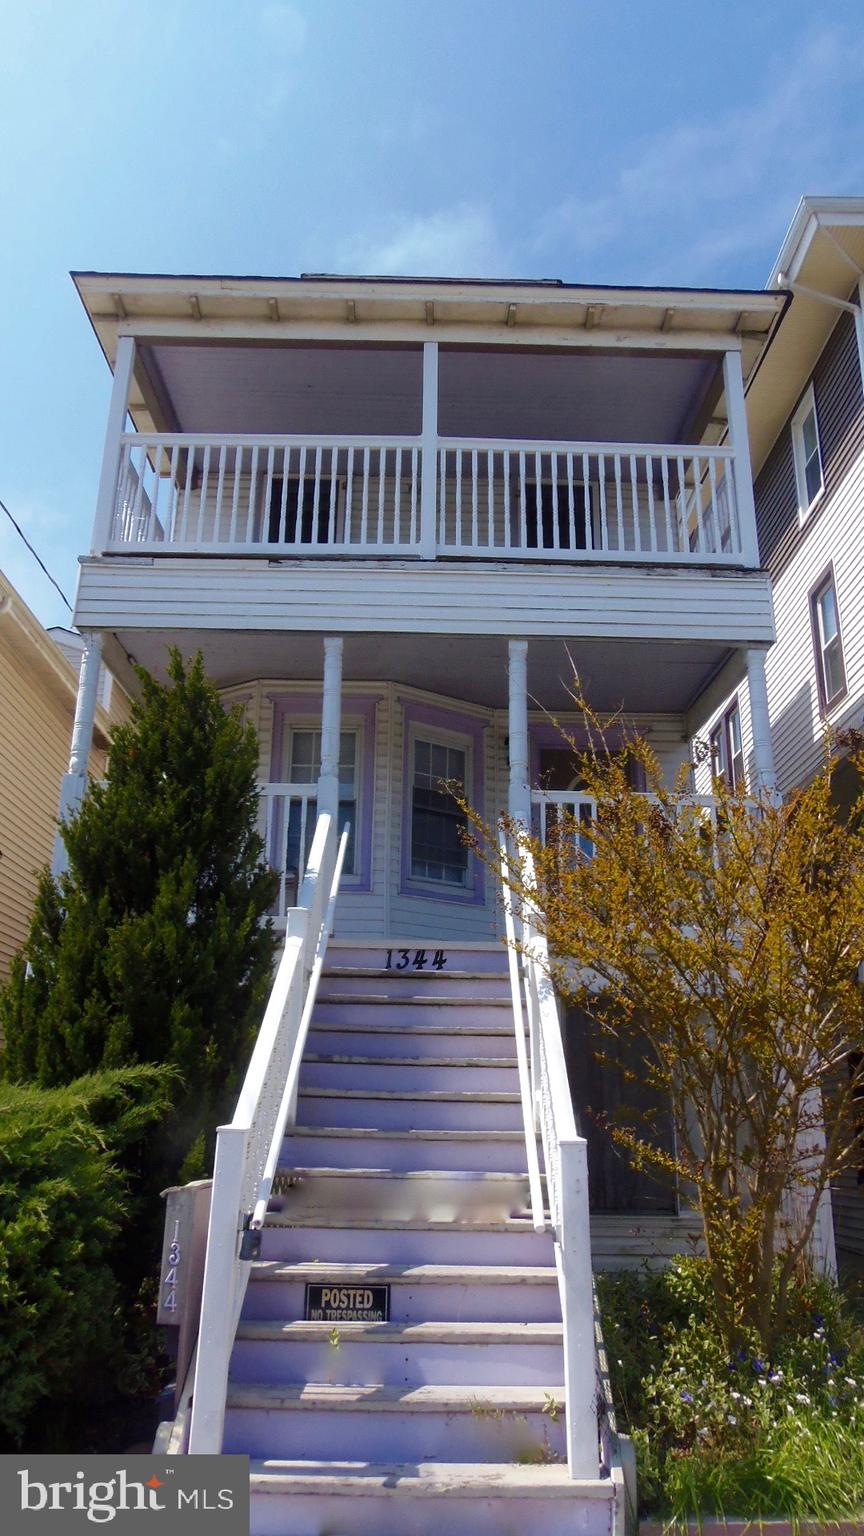 1344 CENTRAL AVENUE, OCEAN CITY, NJ 08226